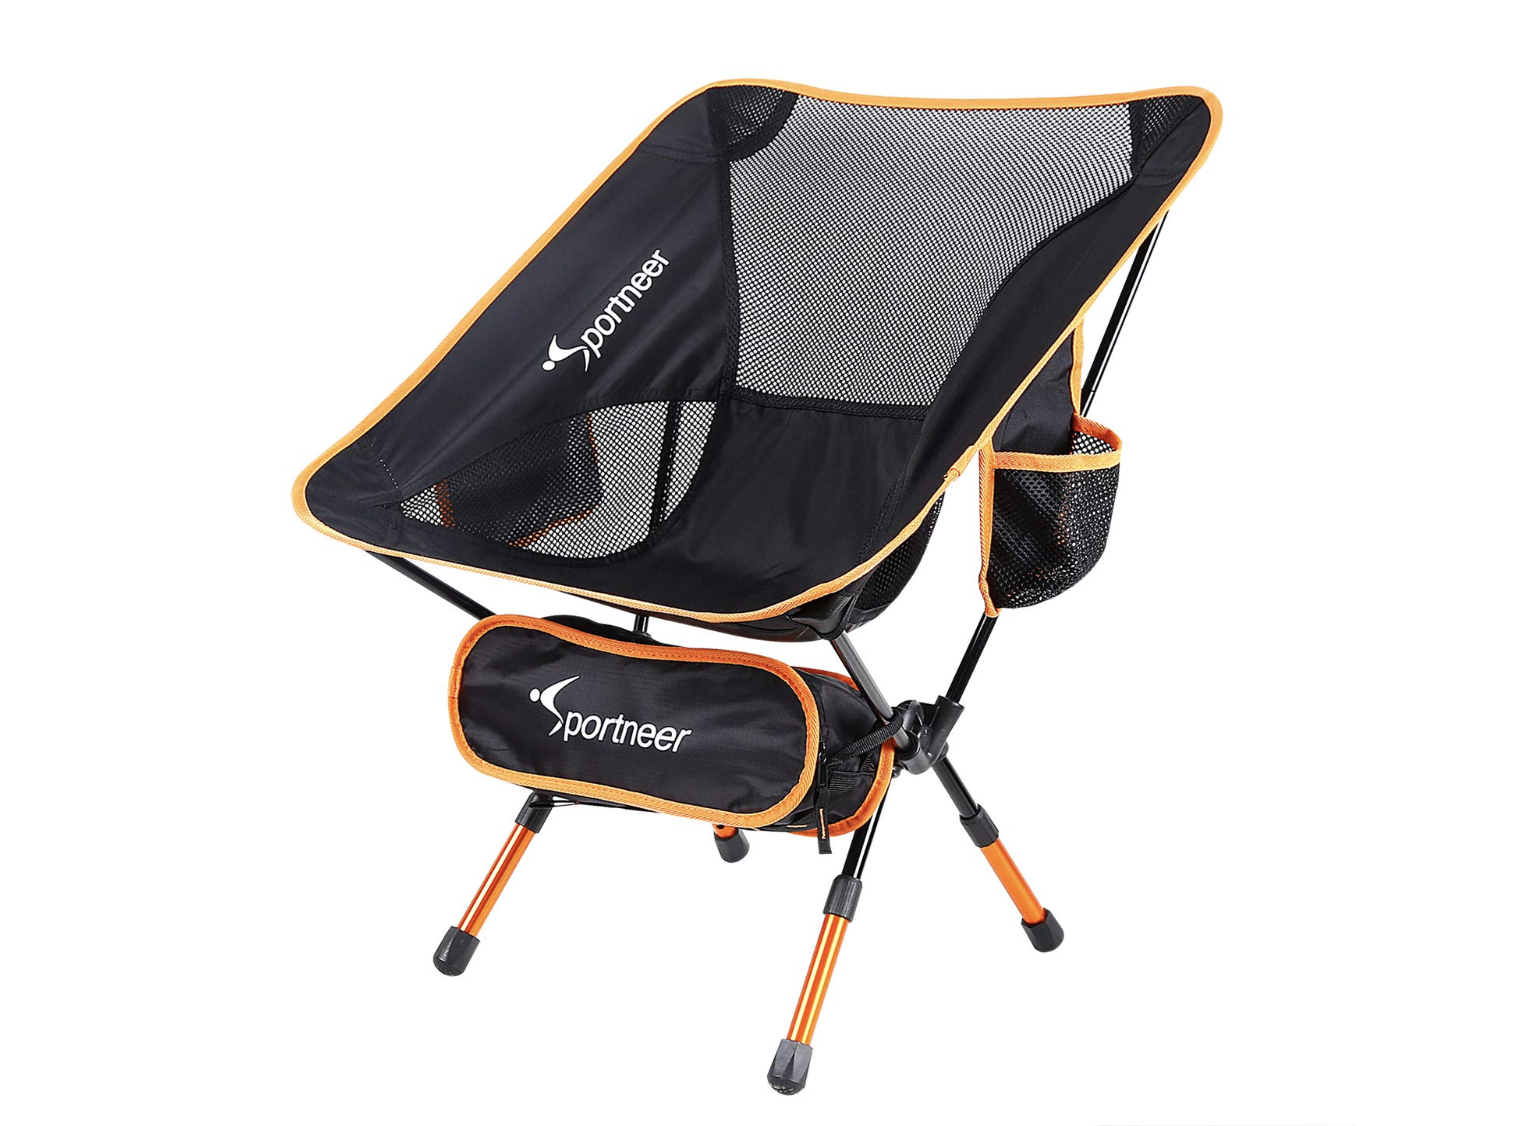 Sportneer Ultralight Portable Folding Chair